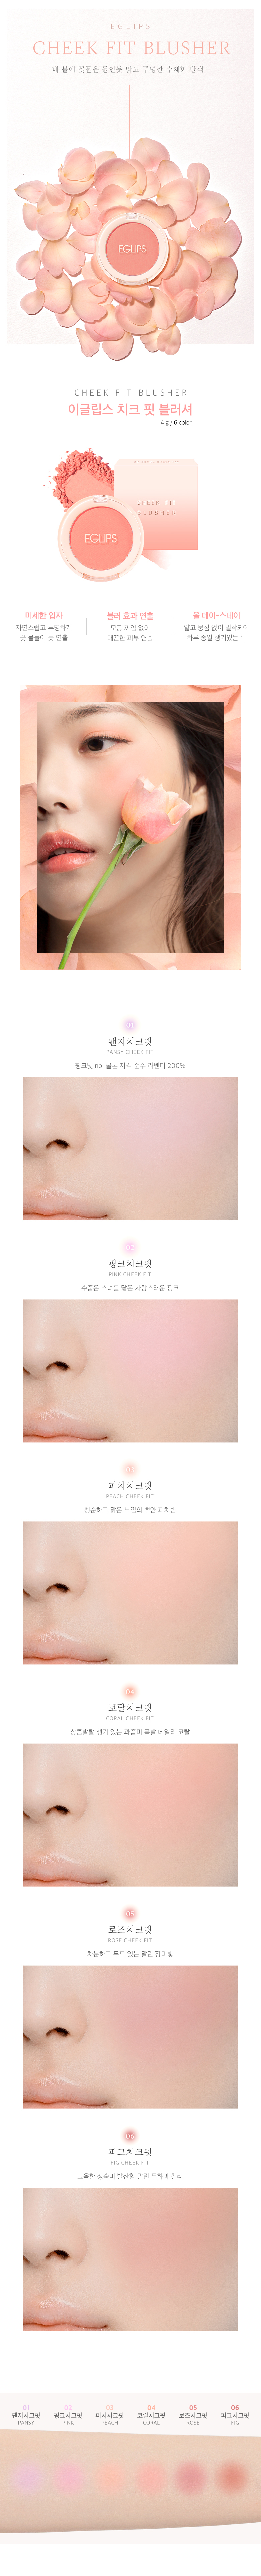 -eglips-cheek-fit-blusher-4g1.jpg